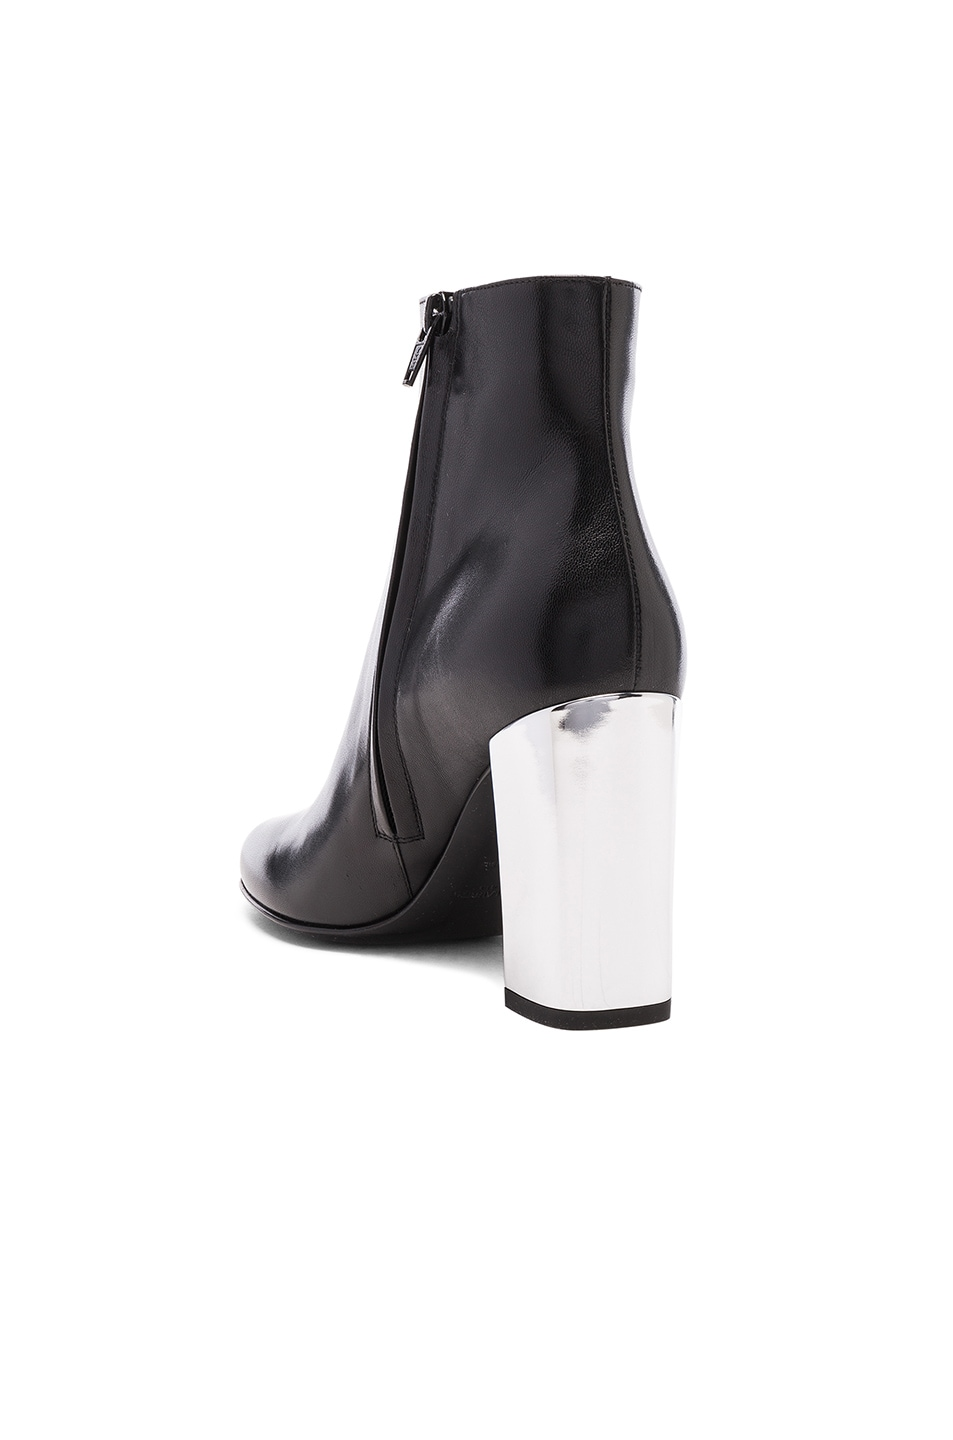 Image 3 of Saint Laurent Leather Babies Pin Boots in Black & Silver